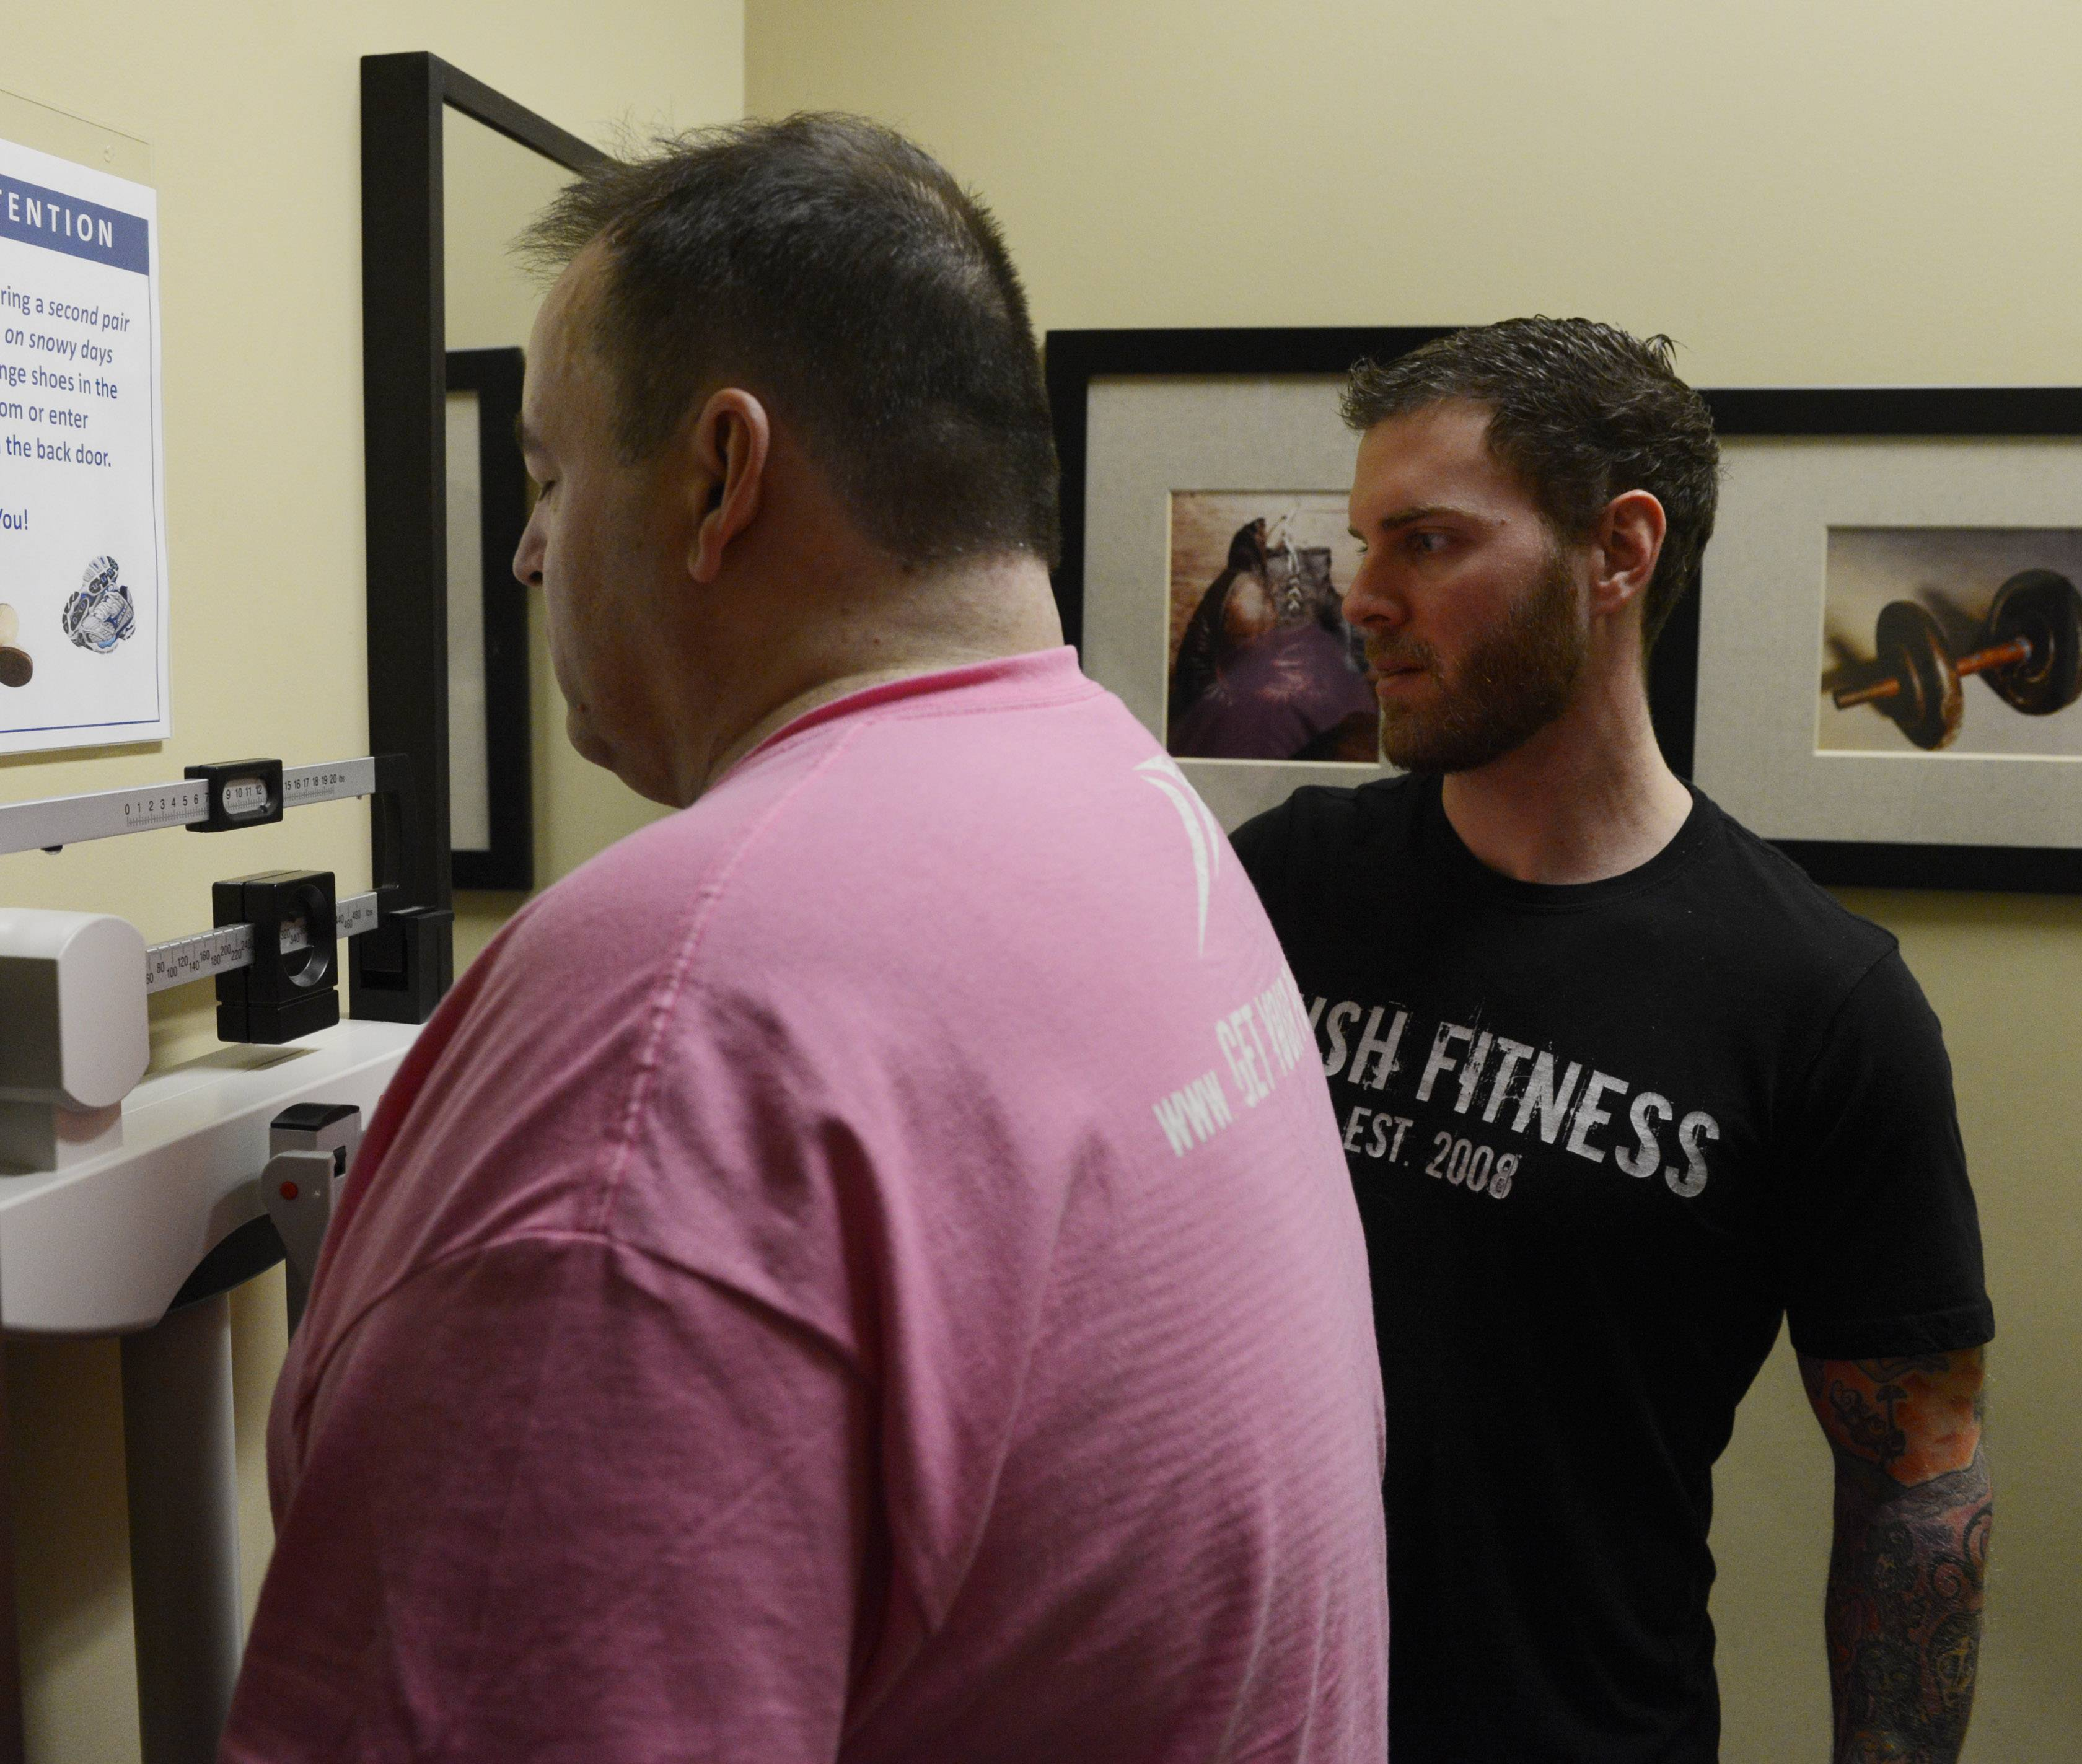 Every boot camp at Push Fitness in Schaumburg ends with the weekly weigh-in. Trainer Brad Parotto checks the numbers as John Bohanek weighs in -- after four weeks he is down 29 pounds.